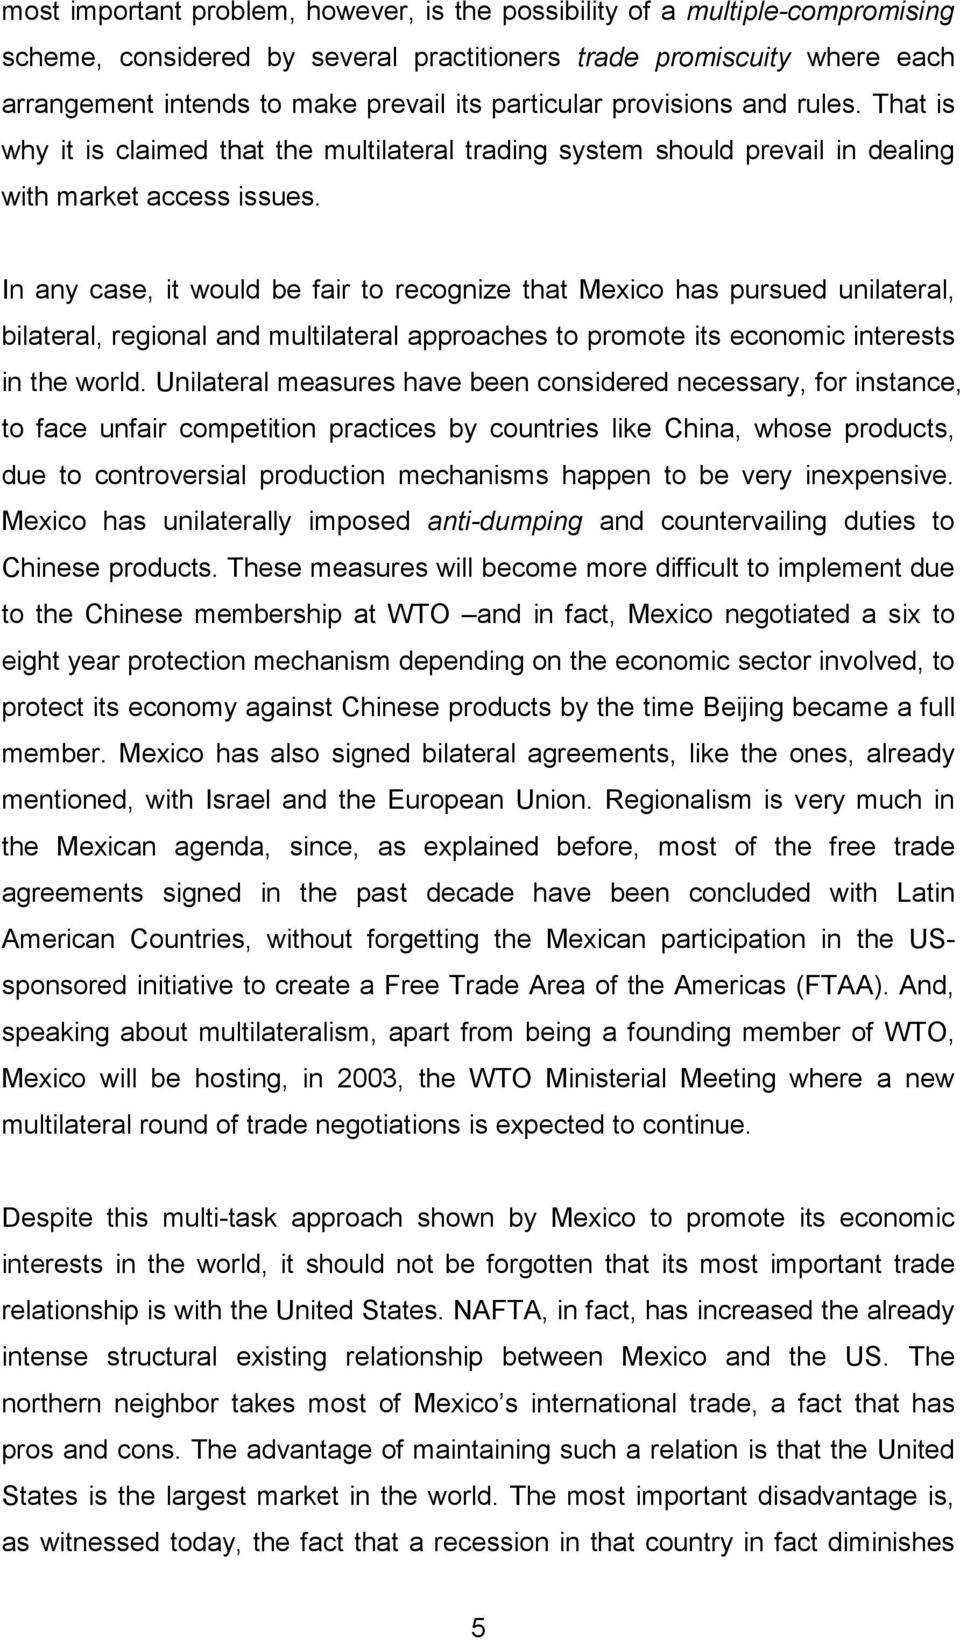 In any case, it would be fair to recognize that Mexico has pursued unilateral, bilateral, regional and multilateral approaches to promote its economic interests in the world.